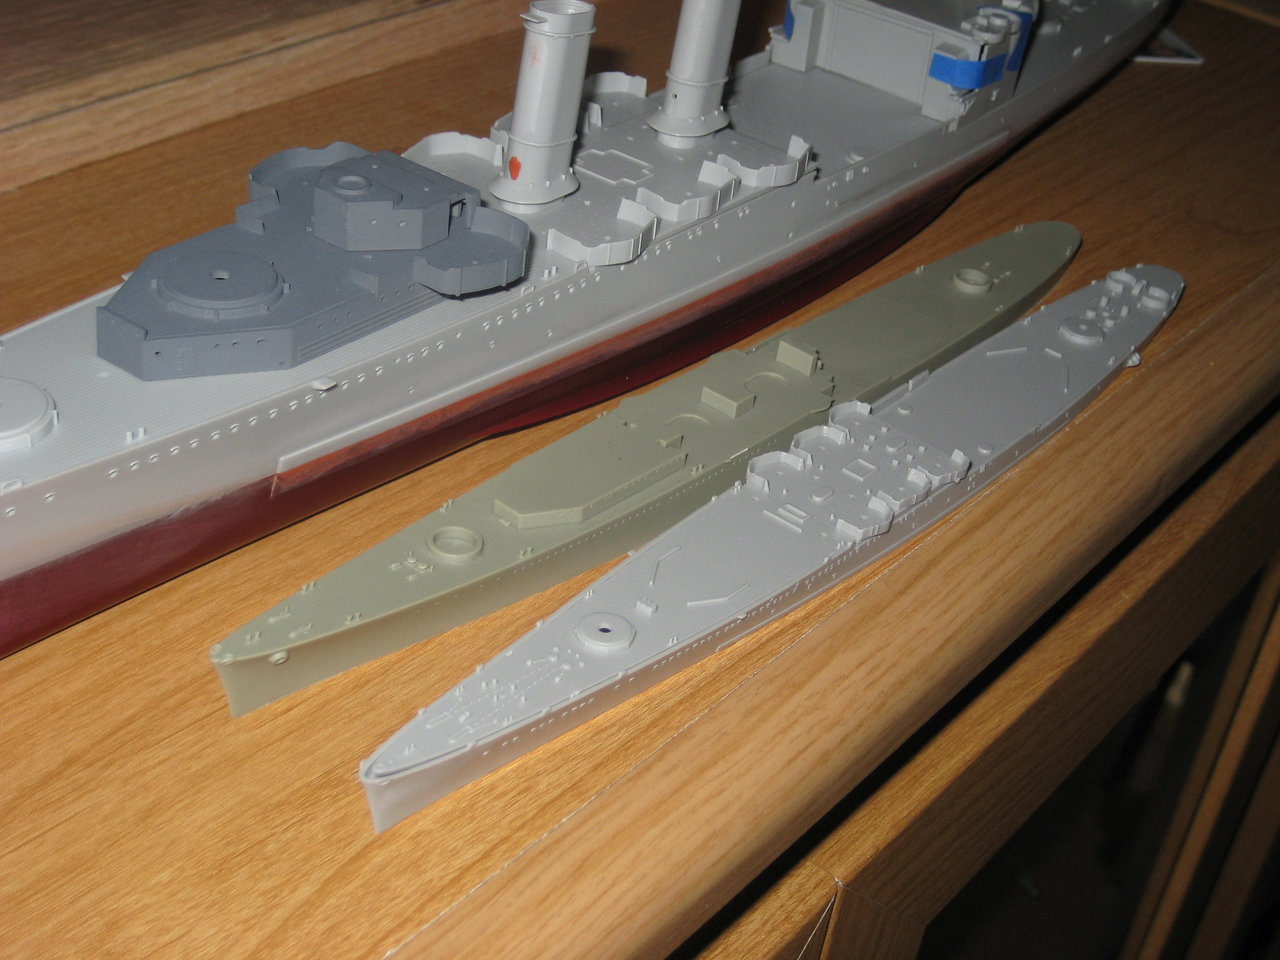 080419: CA-38 with her younger sisters (Combrig, Trumpeter kits in 1/700)